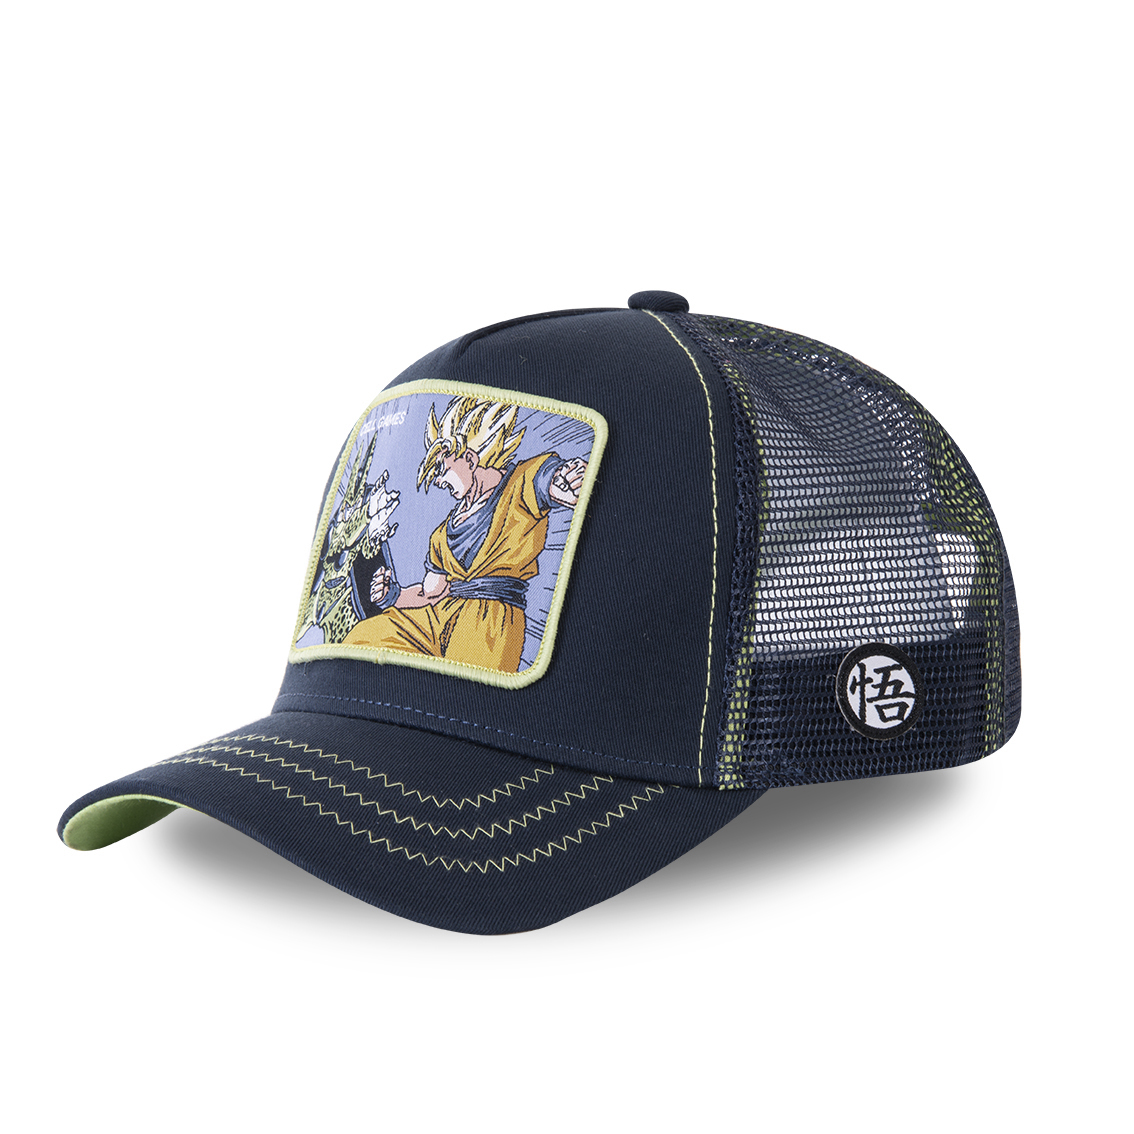 Casquette capslab dragon ball z cell games bleu marine (photo)